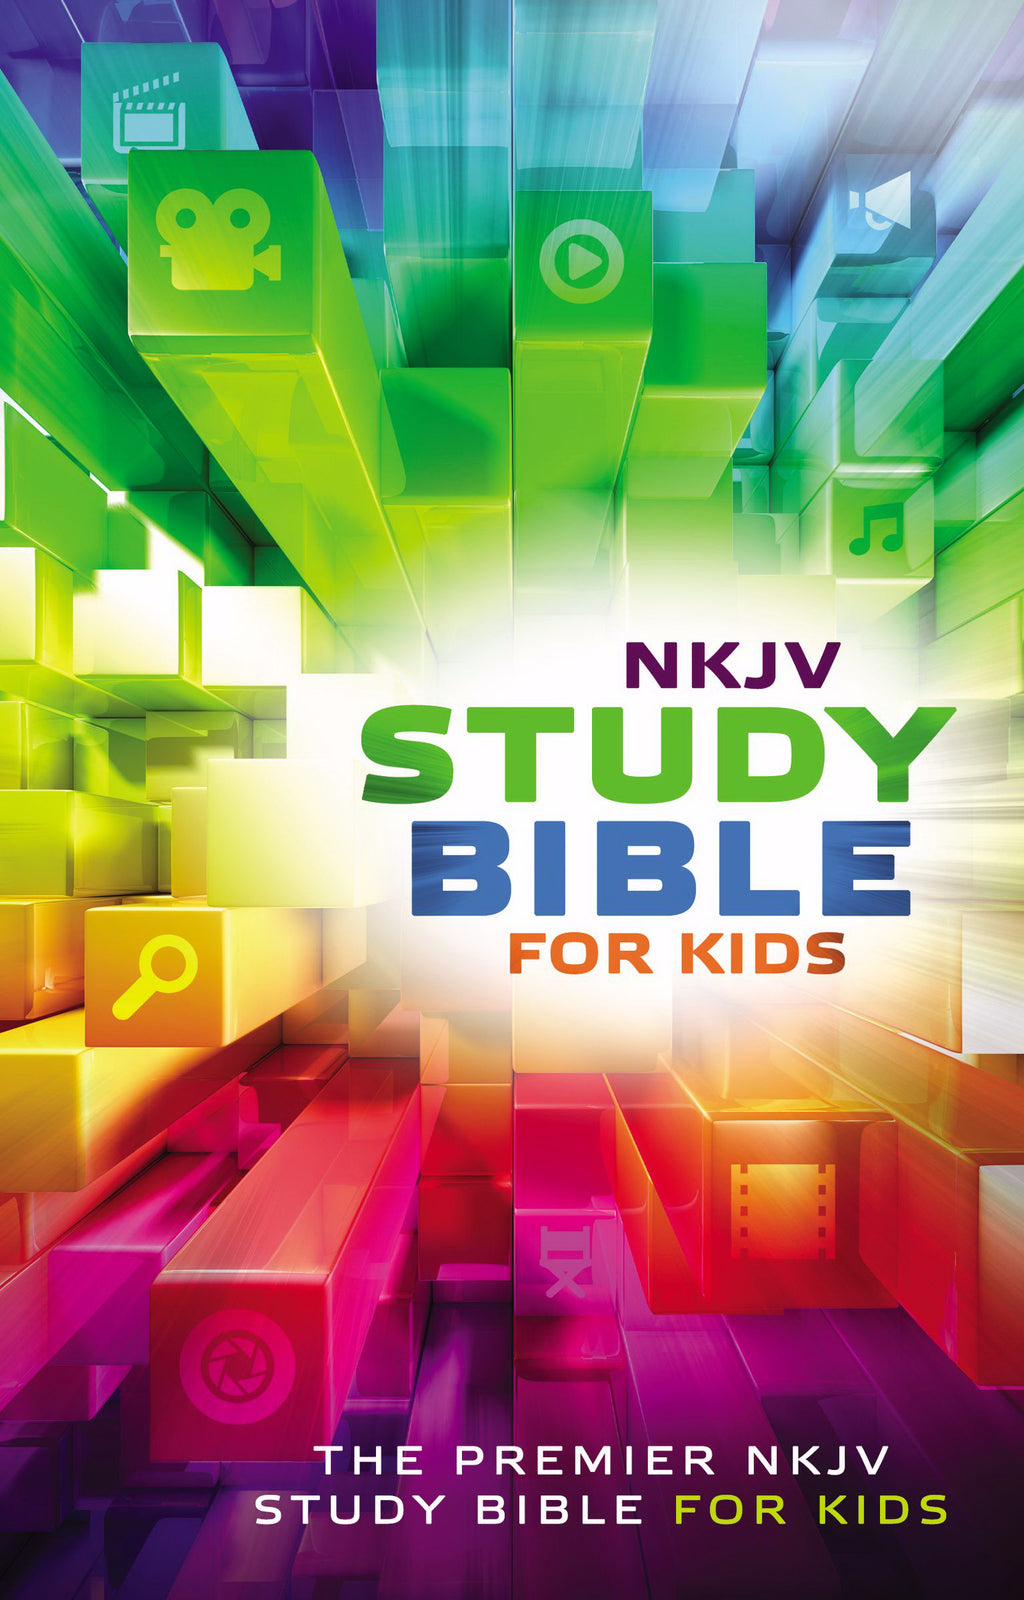 NKJV Study Bible For Kids-Hardcover